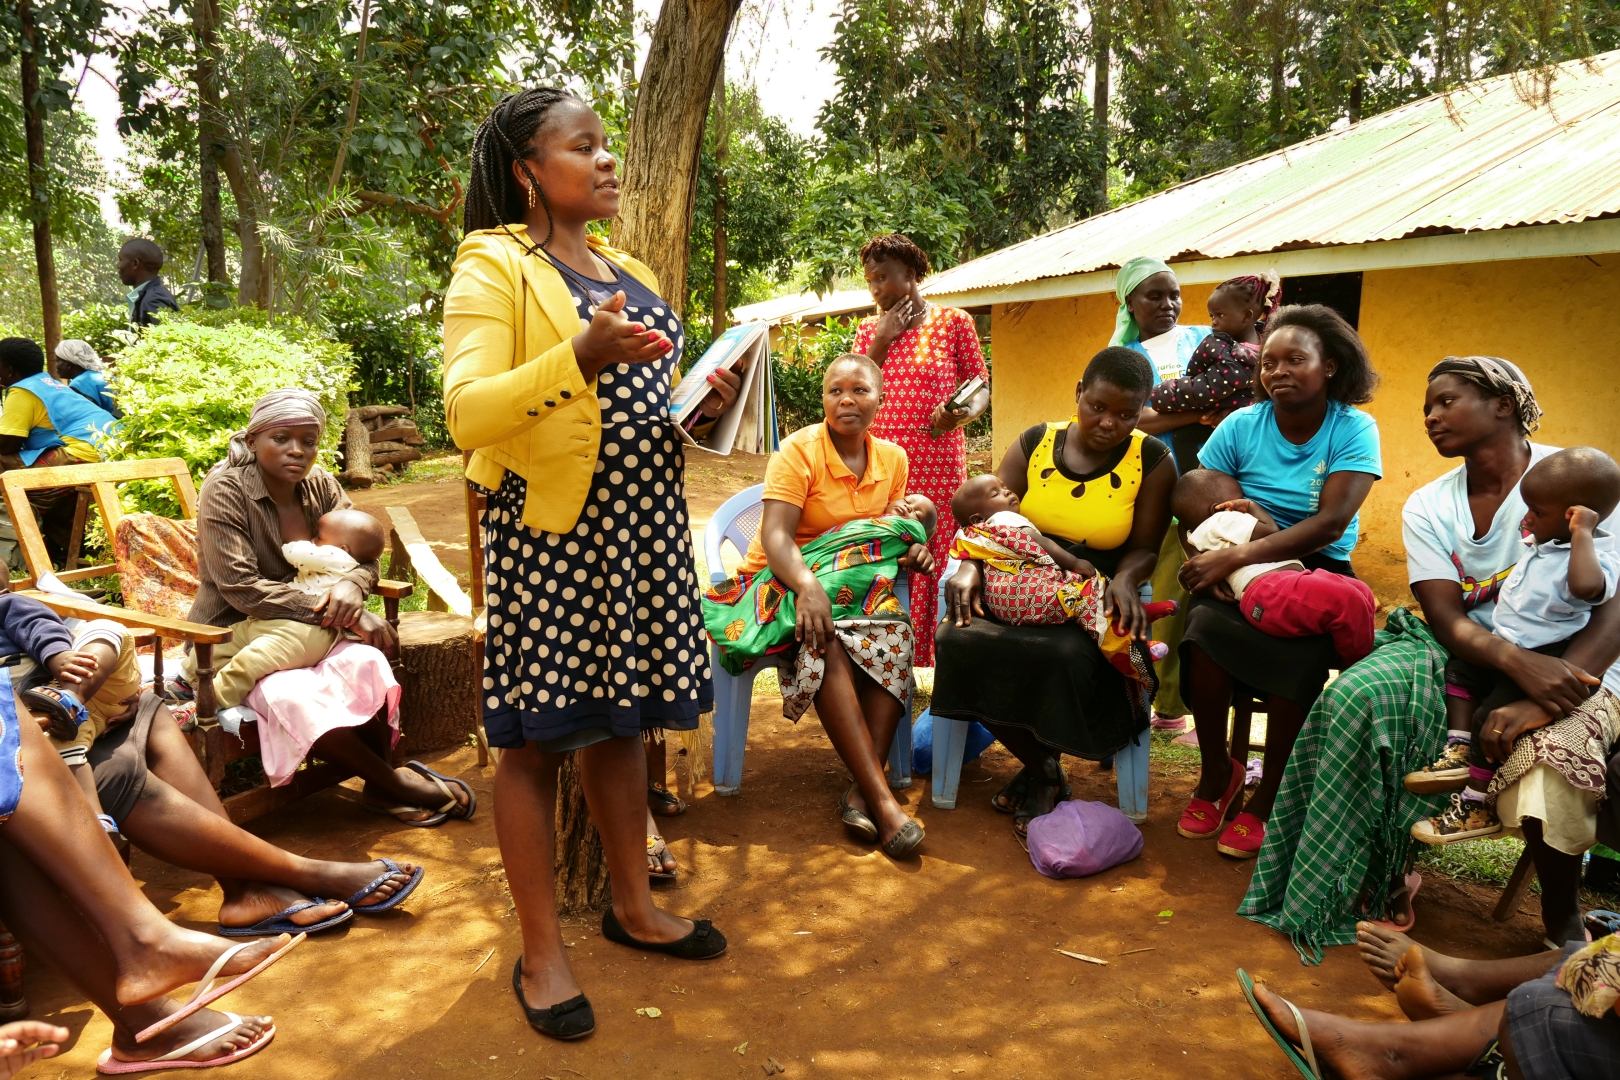 A woman leads a support group for mothers in Western Kenya